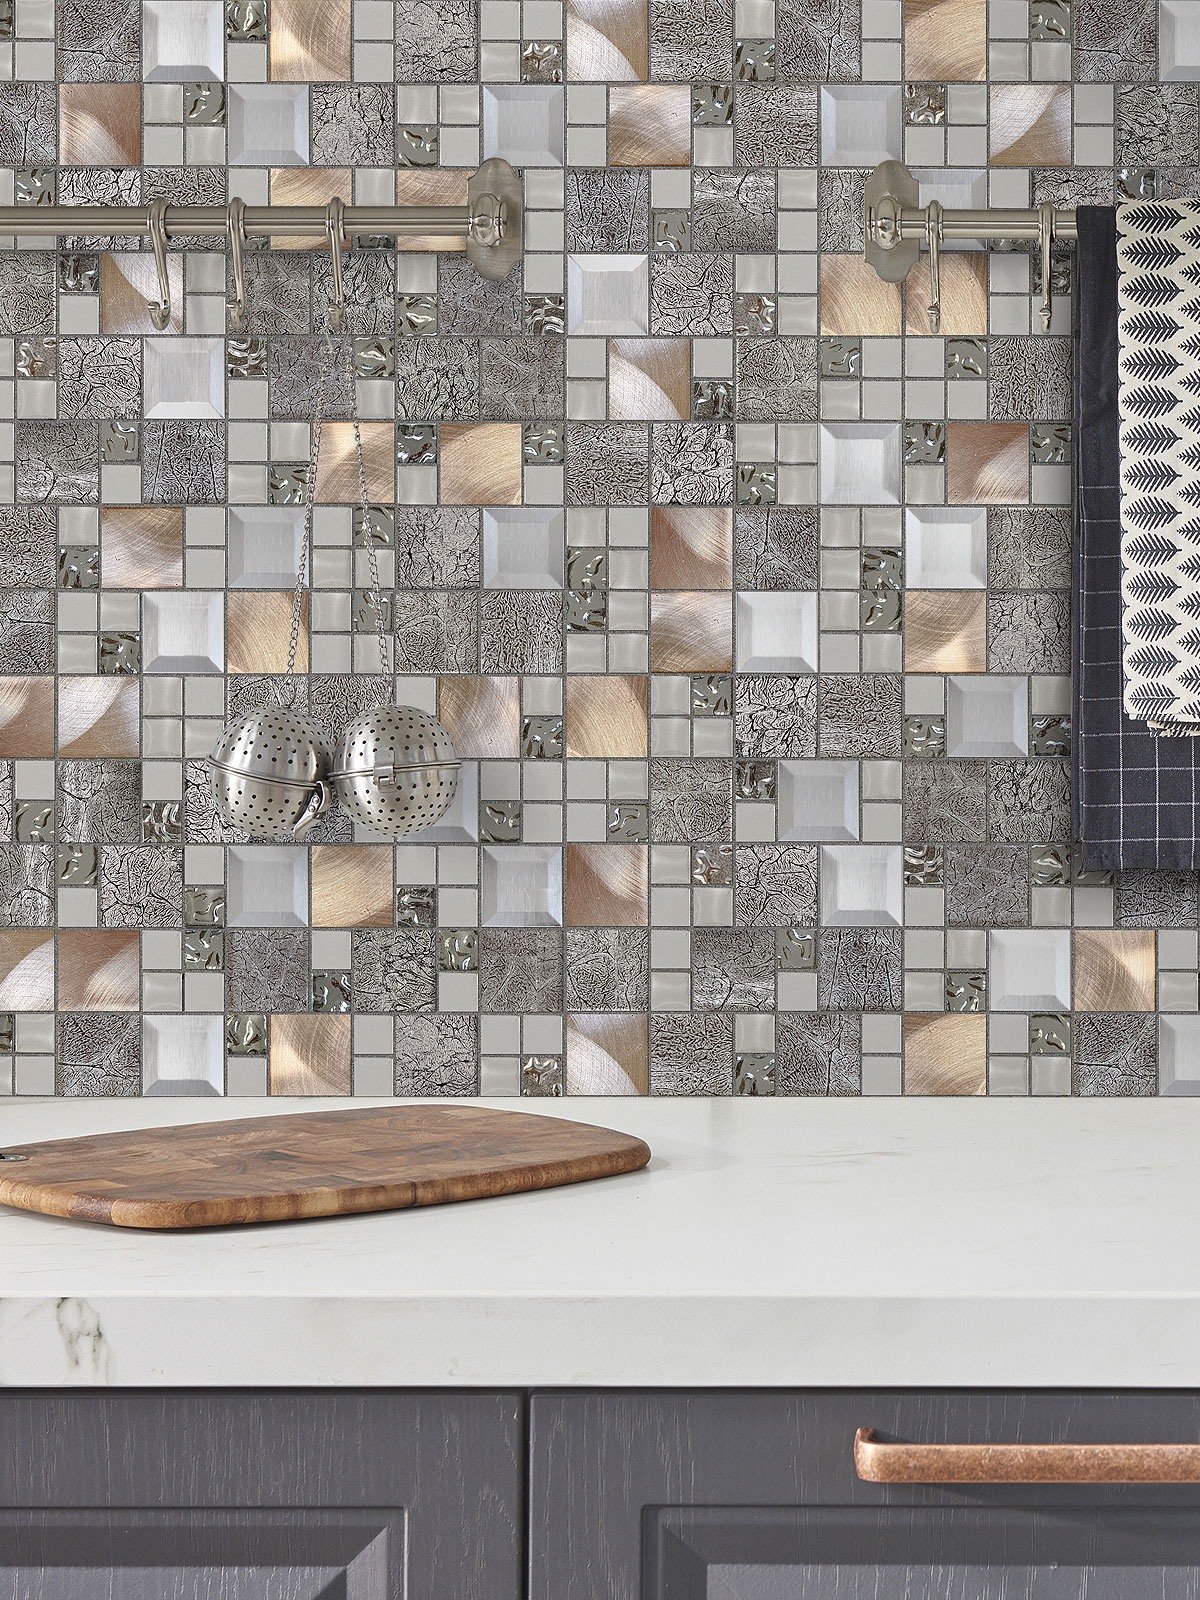 - Glass Metal Gray Copper Mosaic Backsplash Tile Backsplash.com